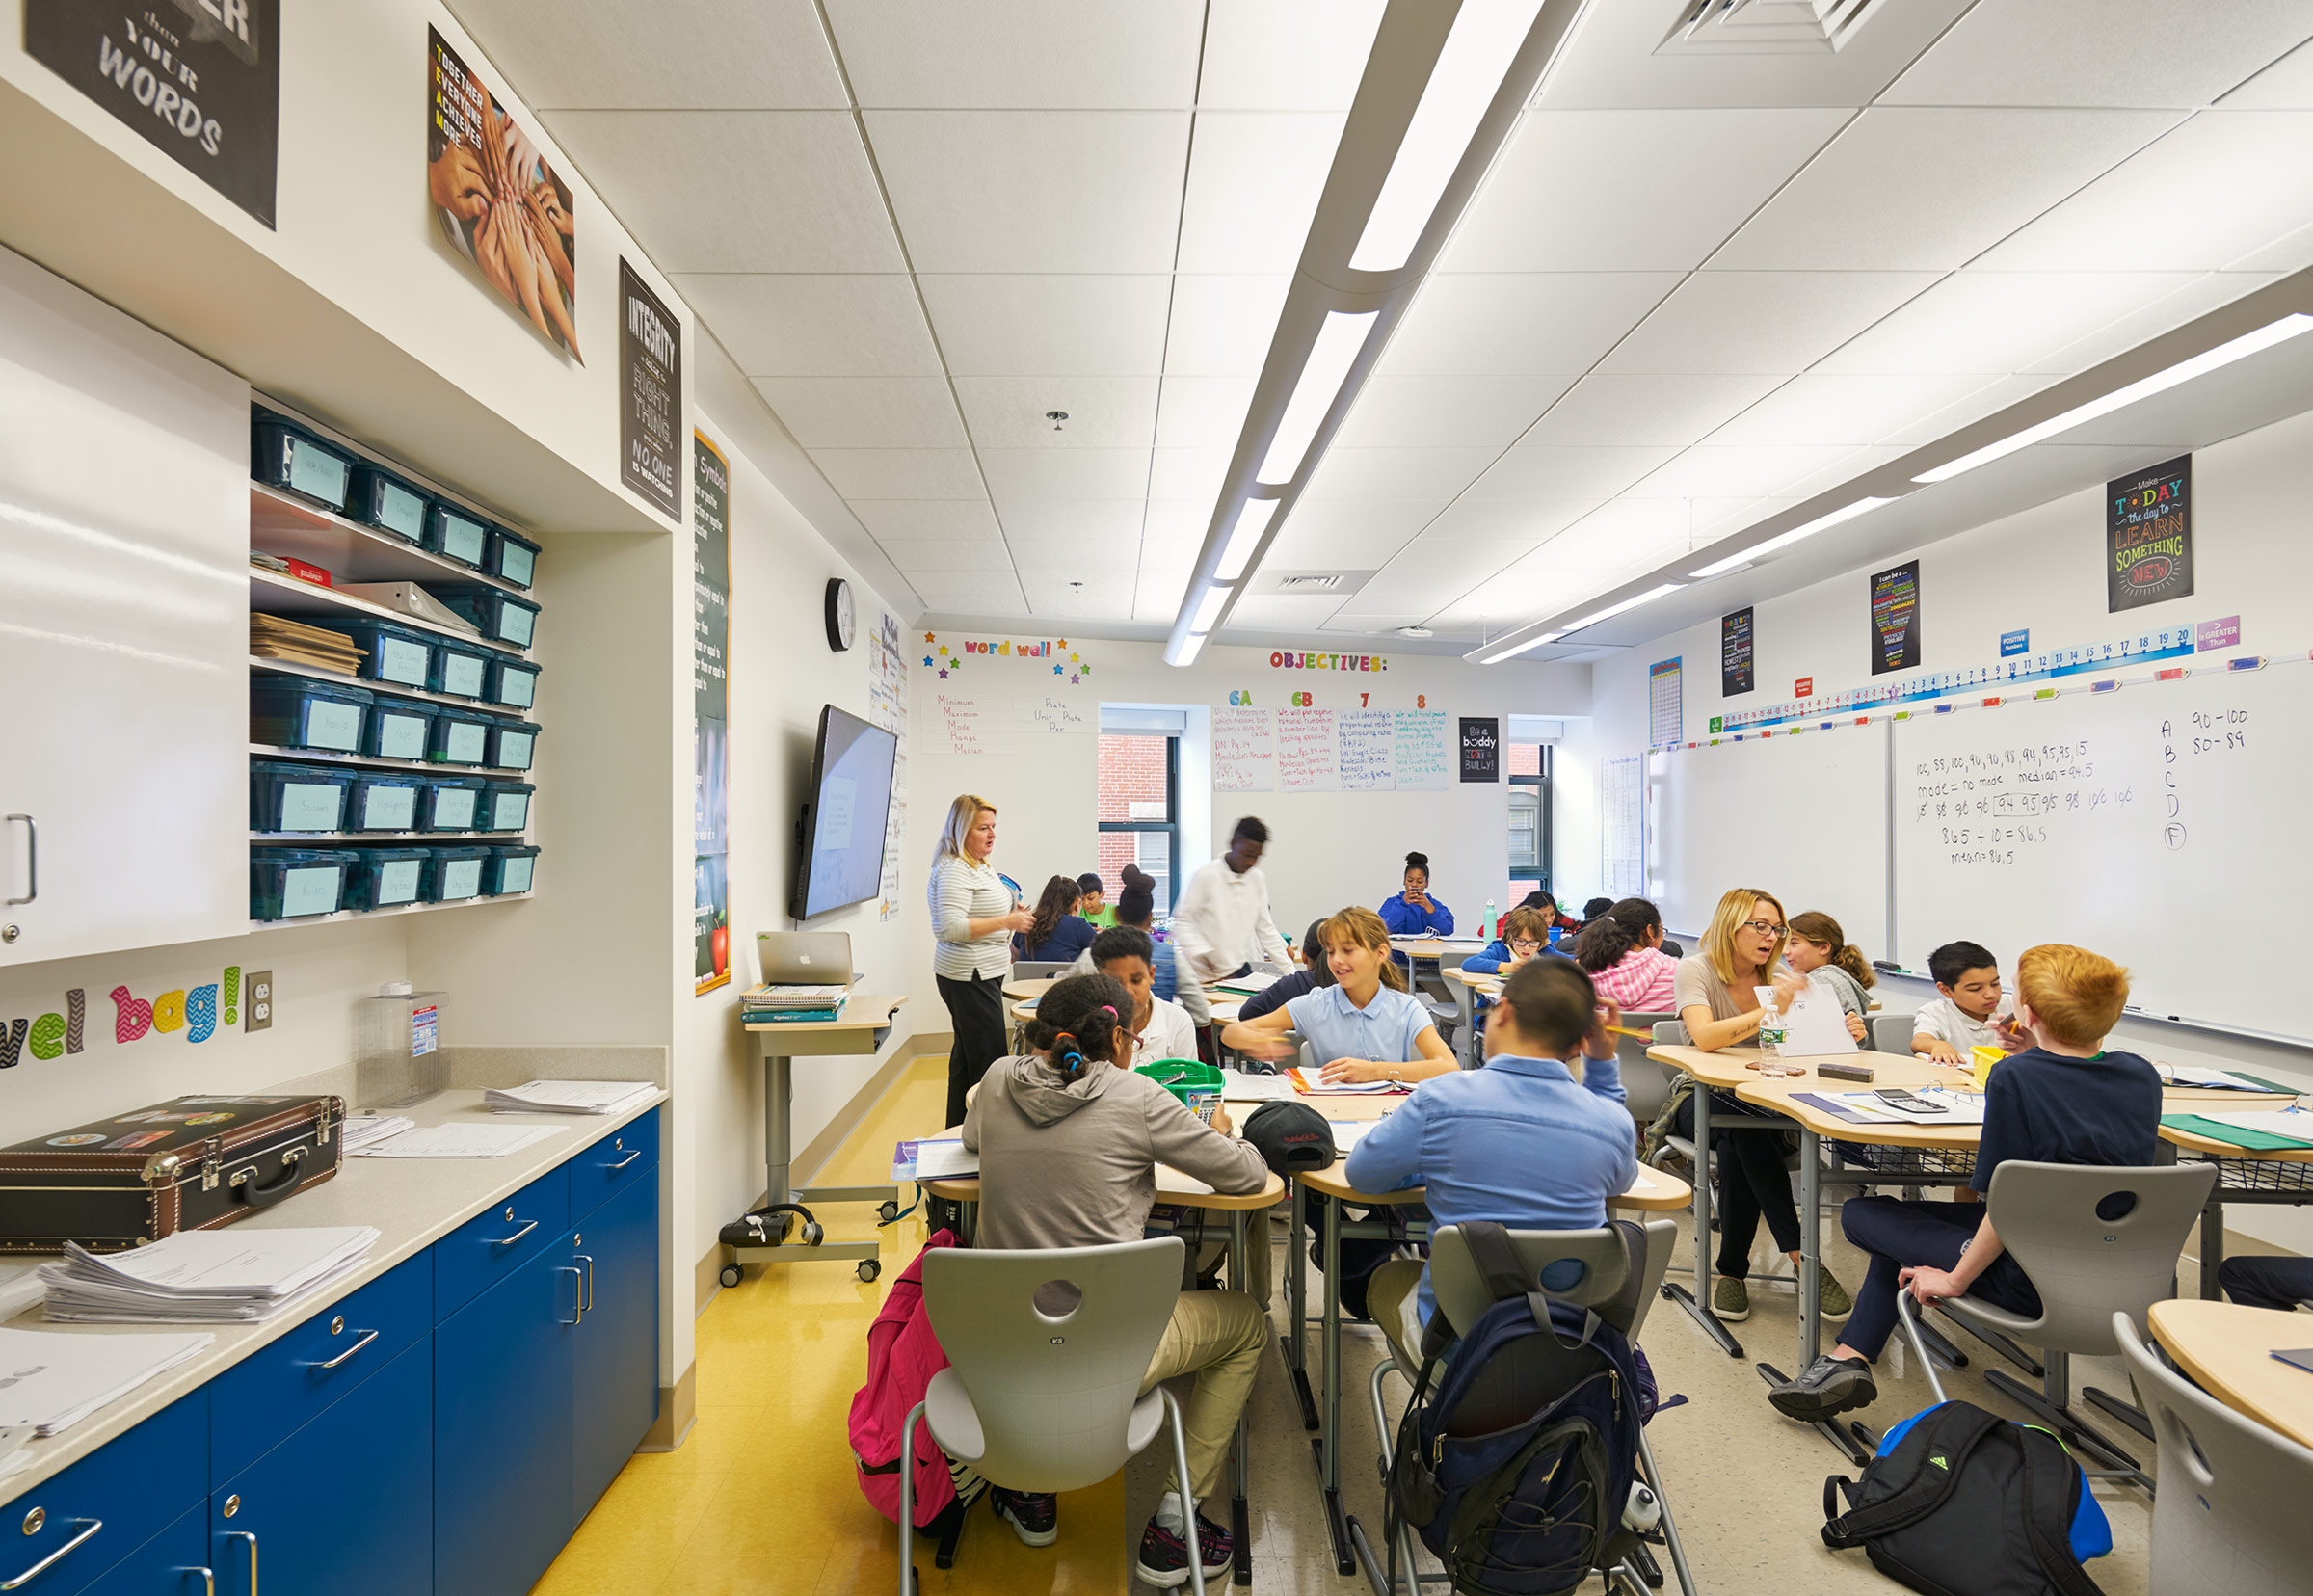 Students in a narrow, horizontal classroom with blue cabinets and and yellow floor.